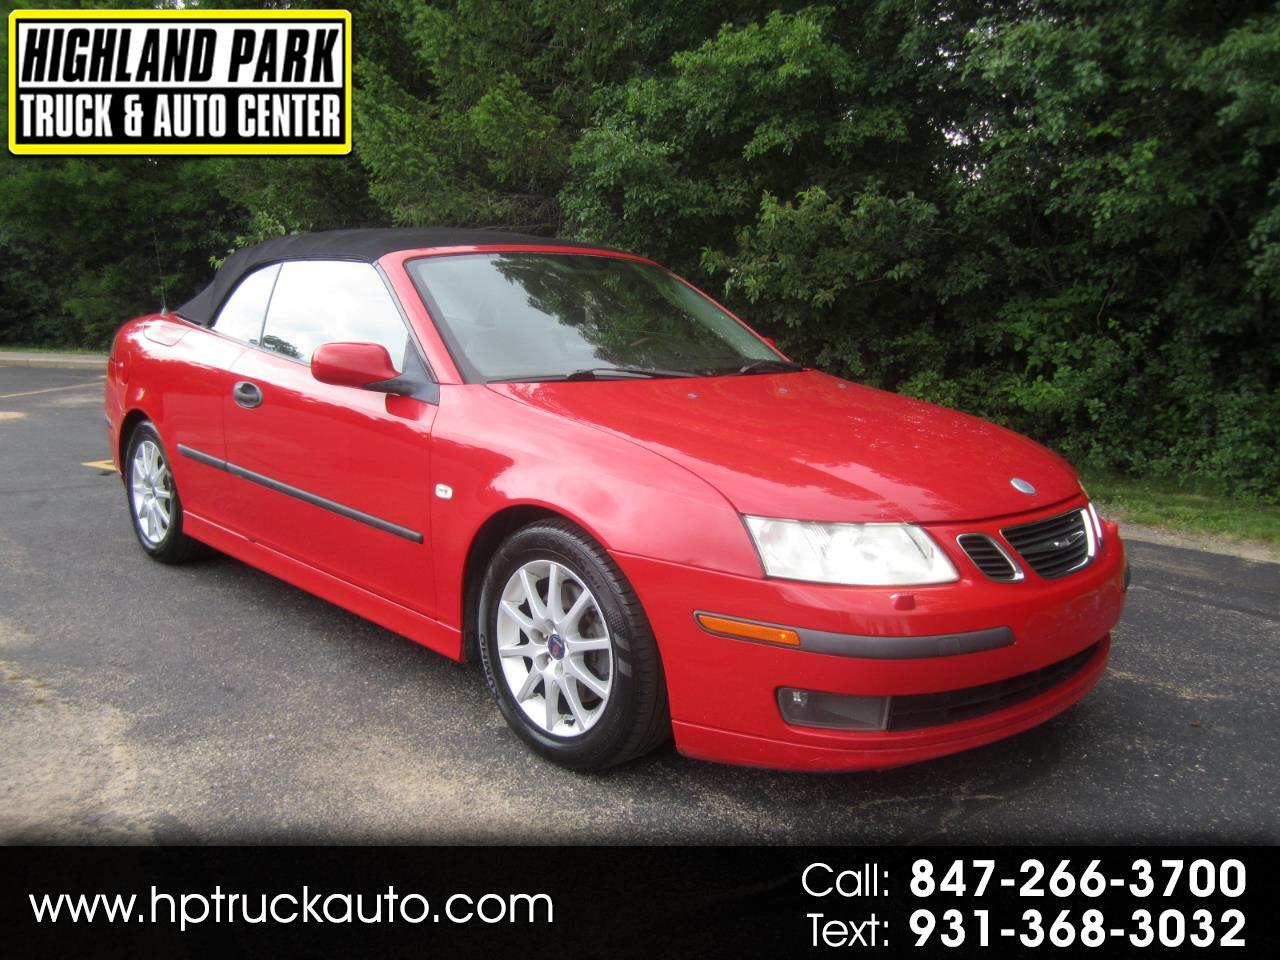 Saab 9-3 2004 for Sale in Highland Park, IL